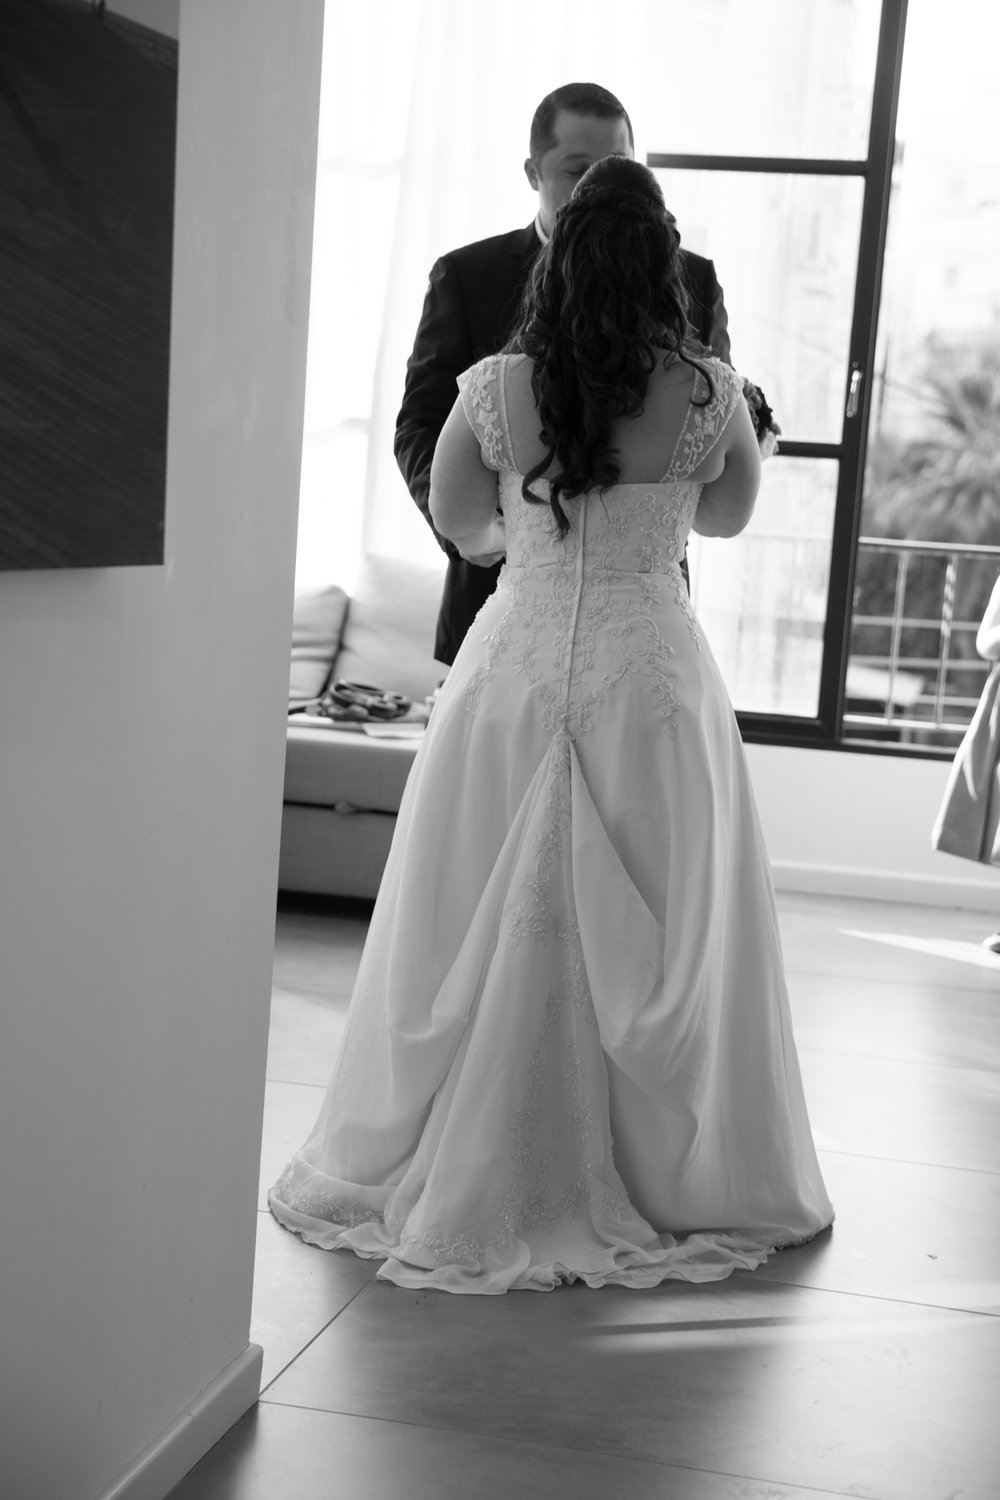 Bride-with-groom-black+white.jpg